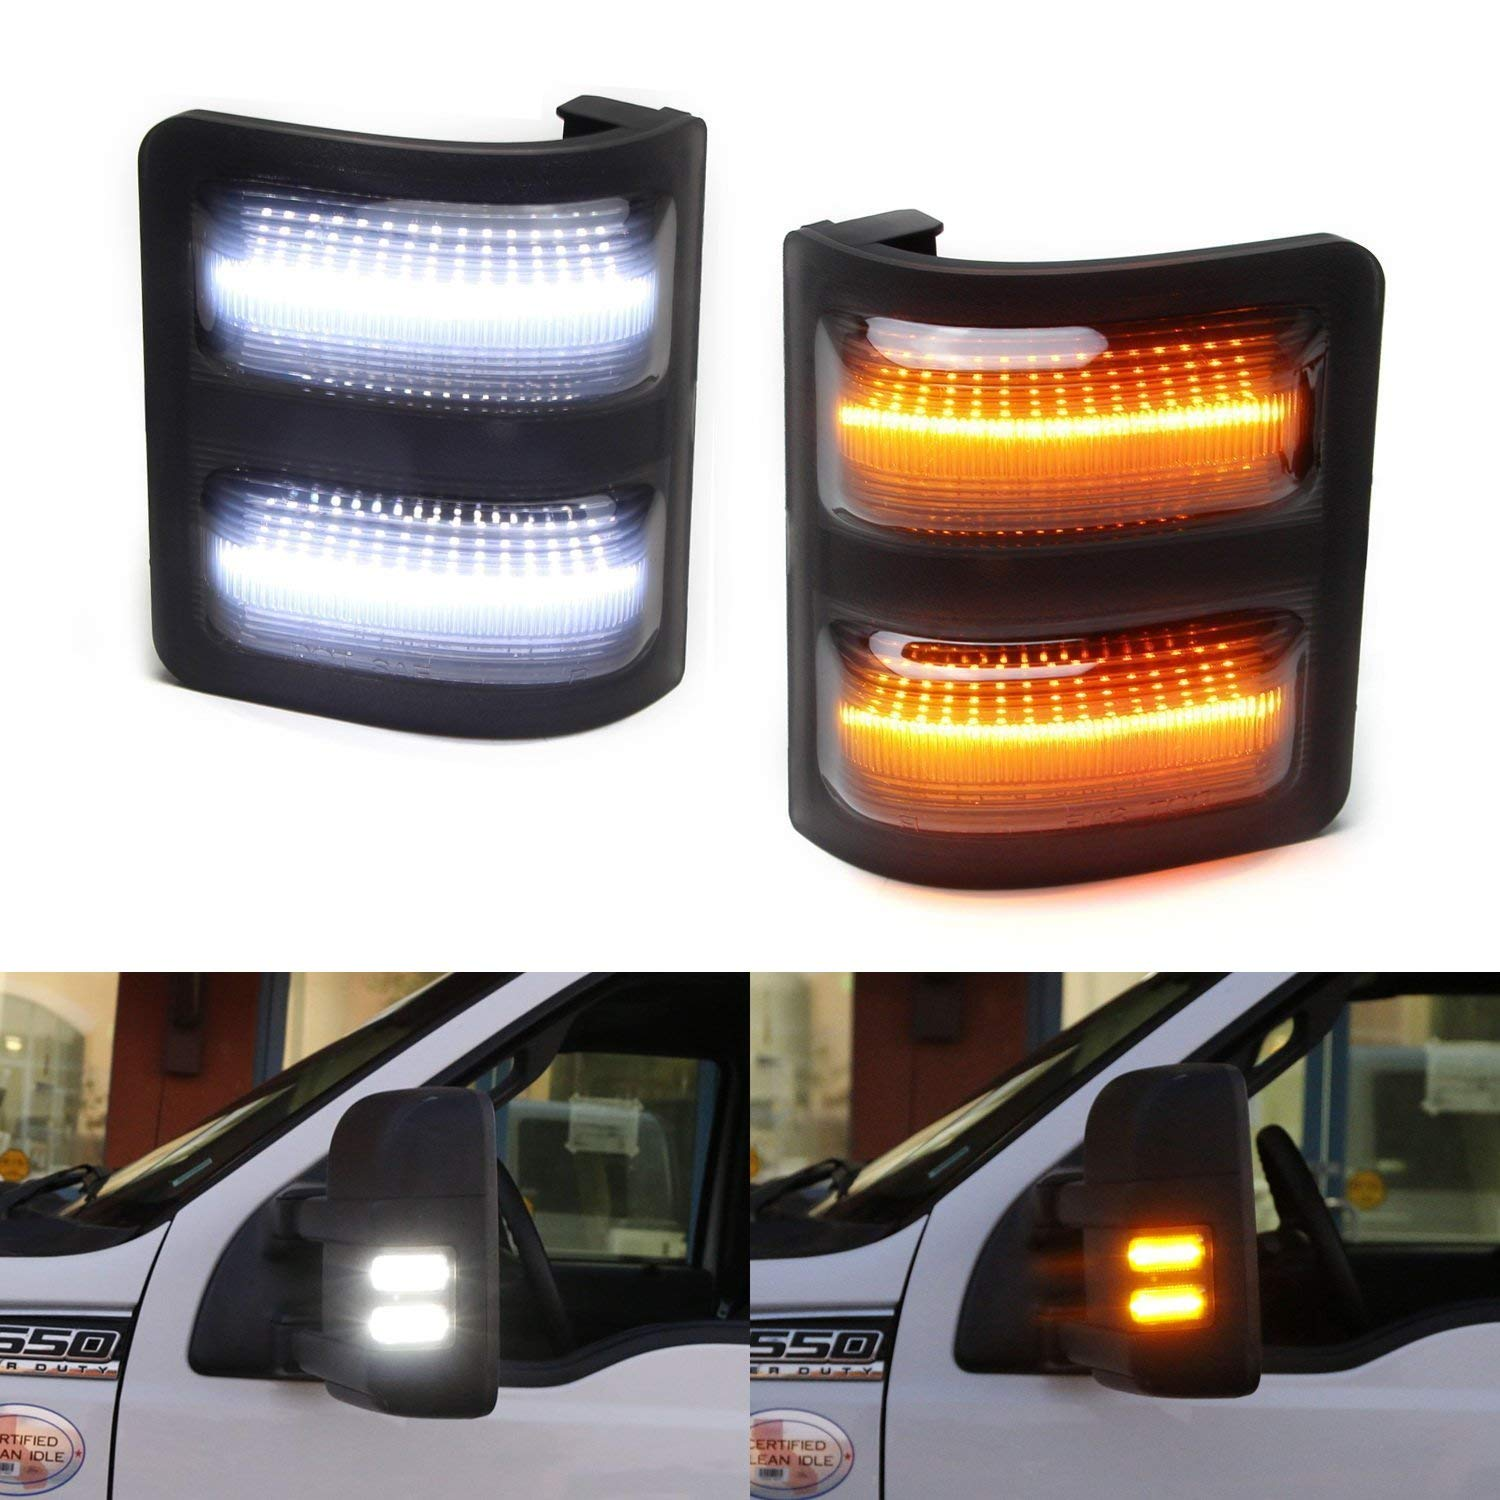 iJDMTOY (2) Smoked Lens Switchback LED Side Mirror Marker Lights For 2008-2016 Ford F-250 F-350 F-450 Super Duty (White: Parking Light, Amber: Turn Signal)